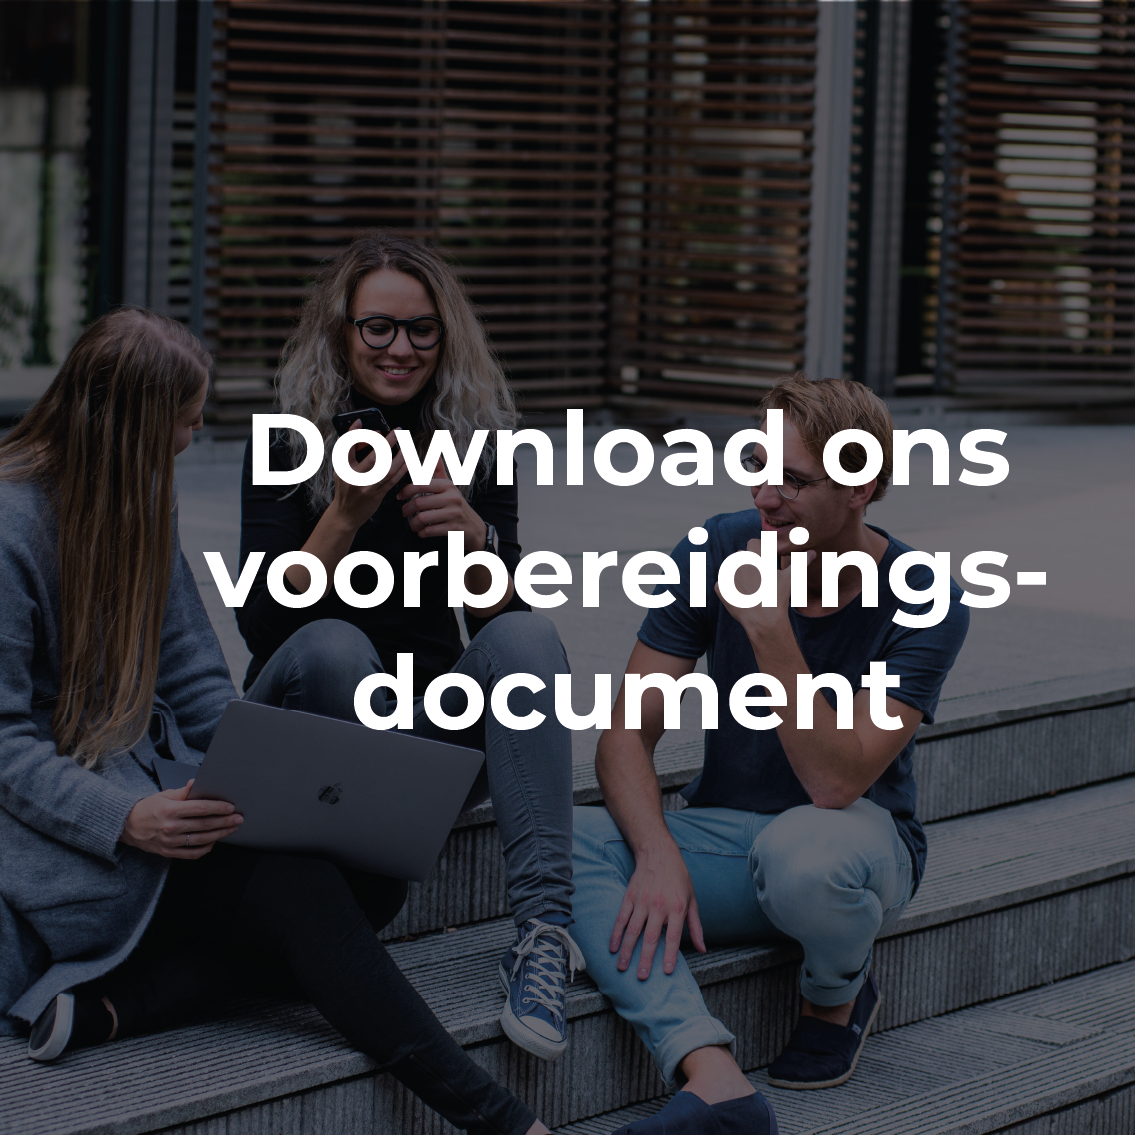 Download ons voorbereidingsdoucment